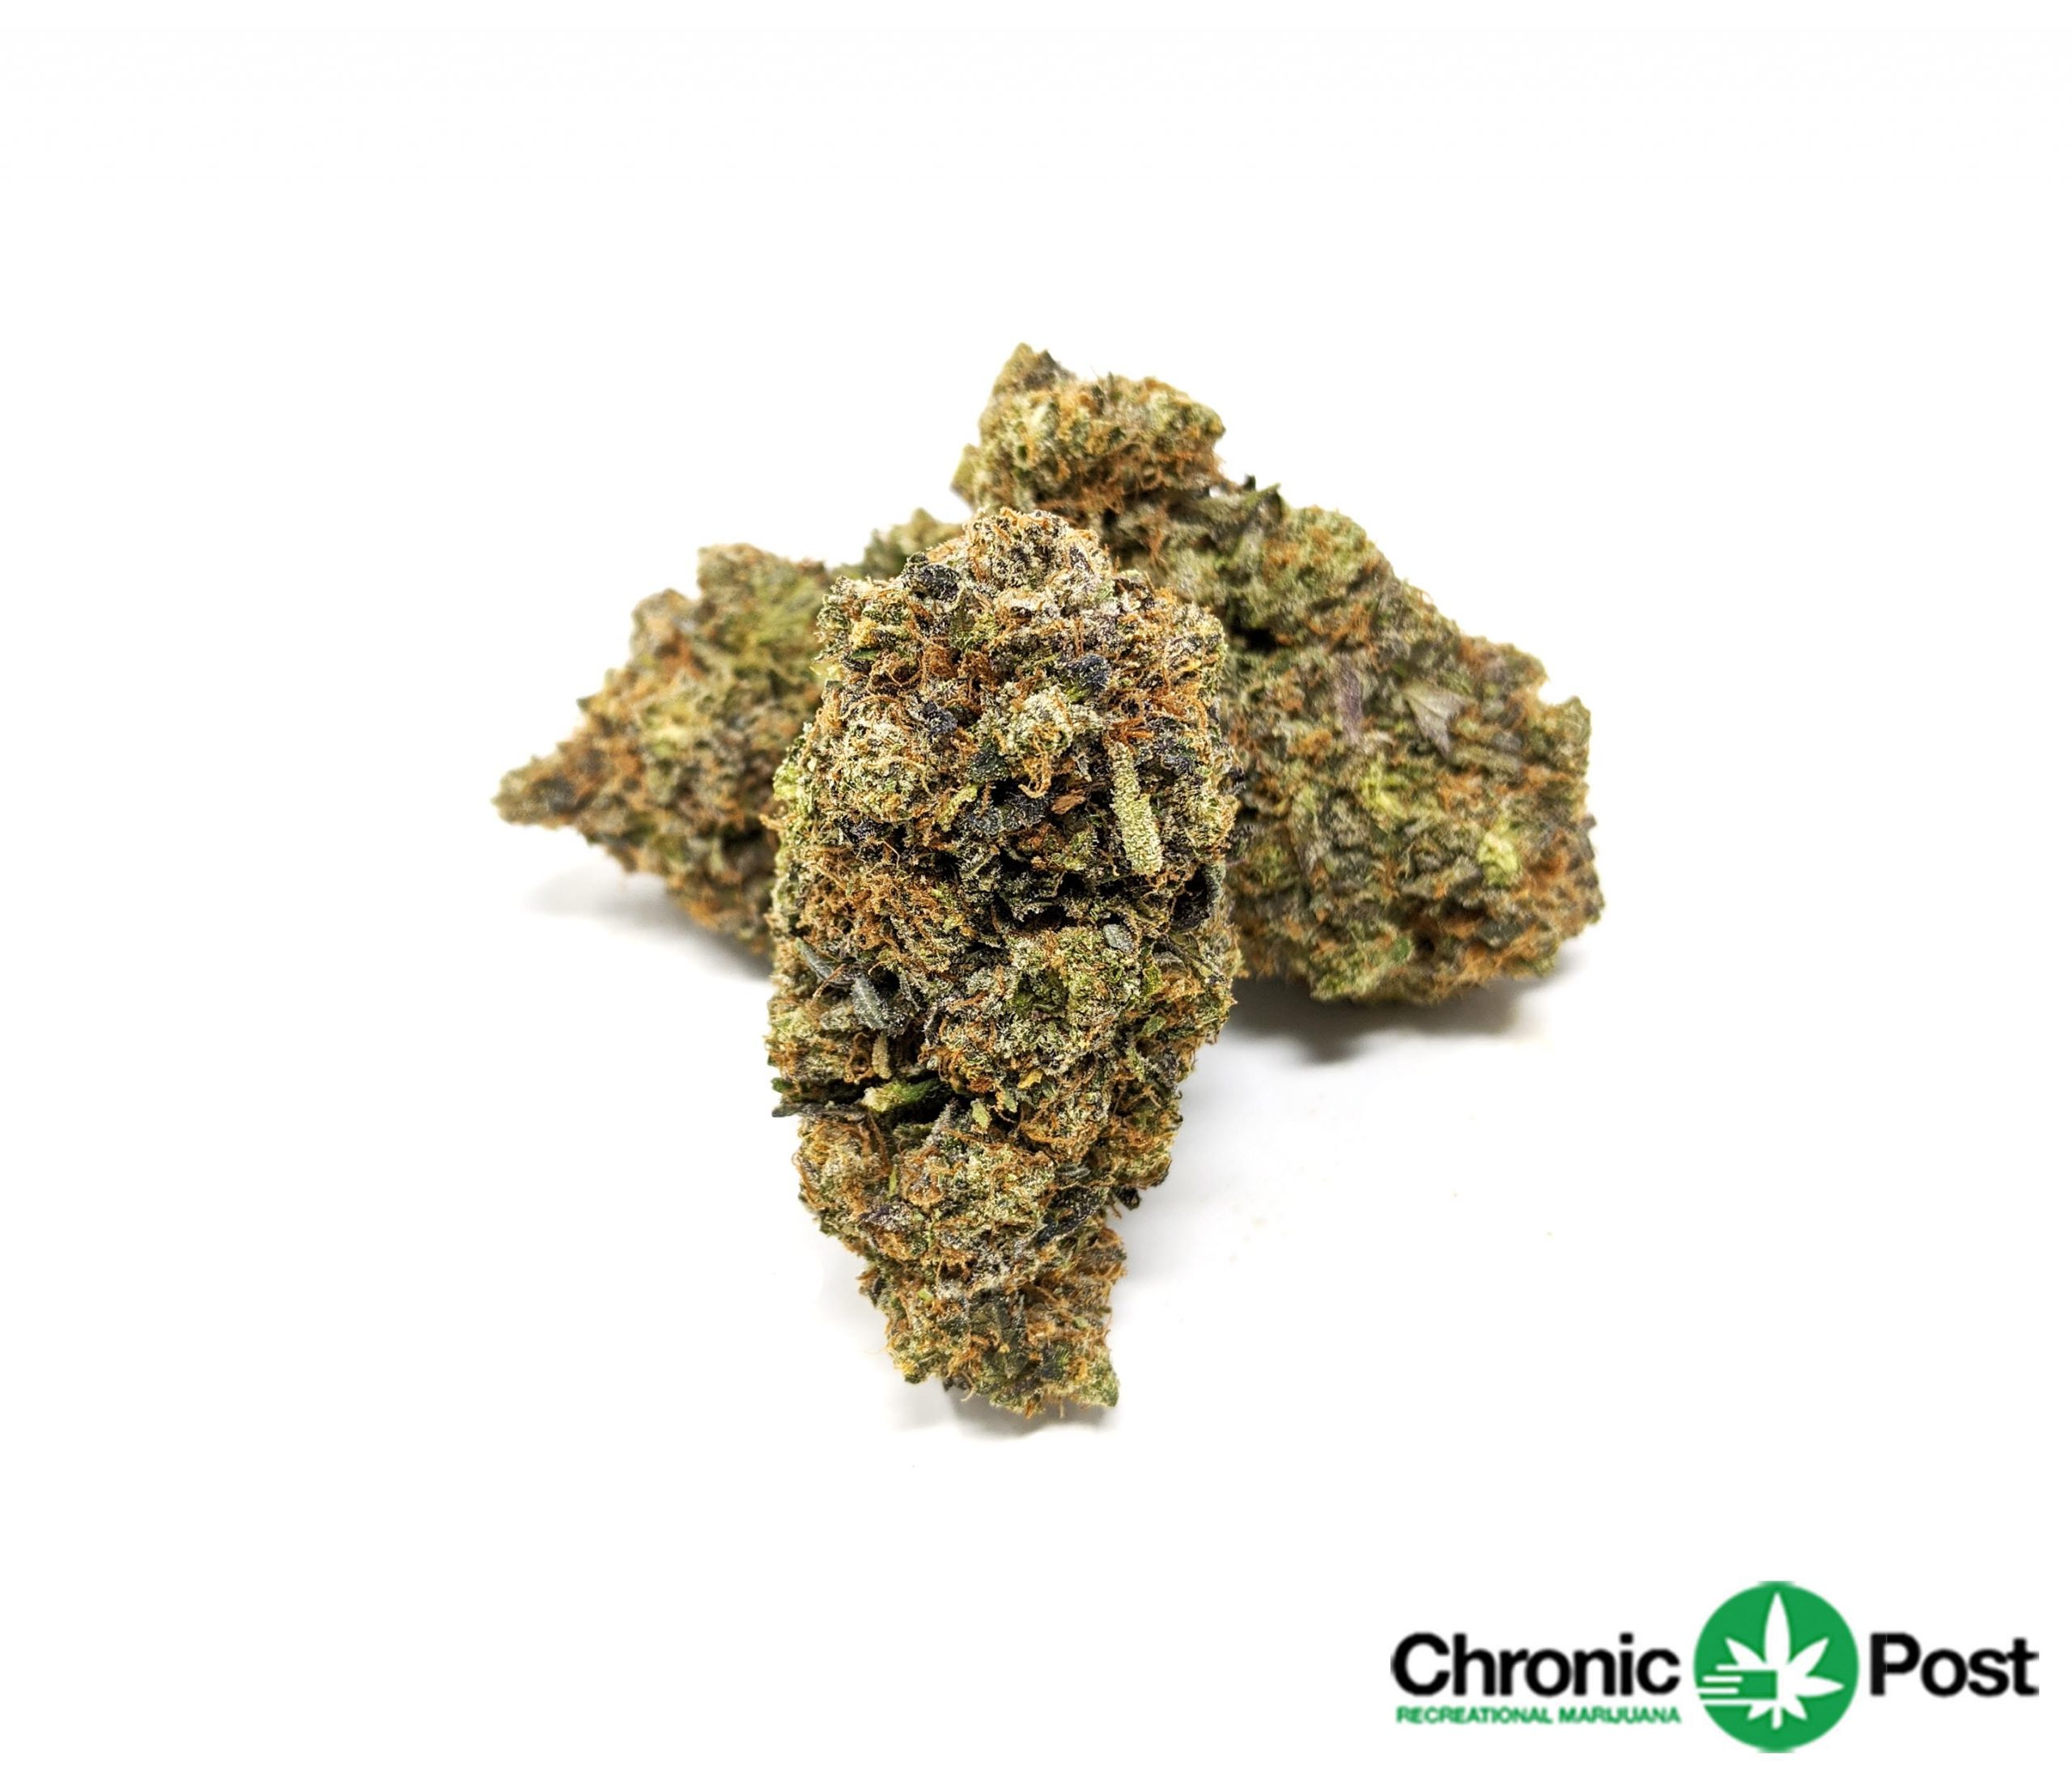 Bruce Banner CRAFT by Chronic Post - Image © 2020 Chronic Post. All Rights Reserved.